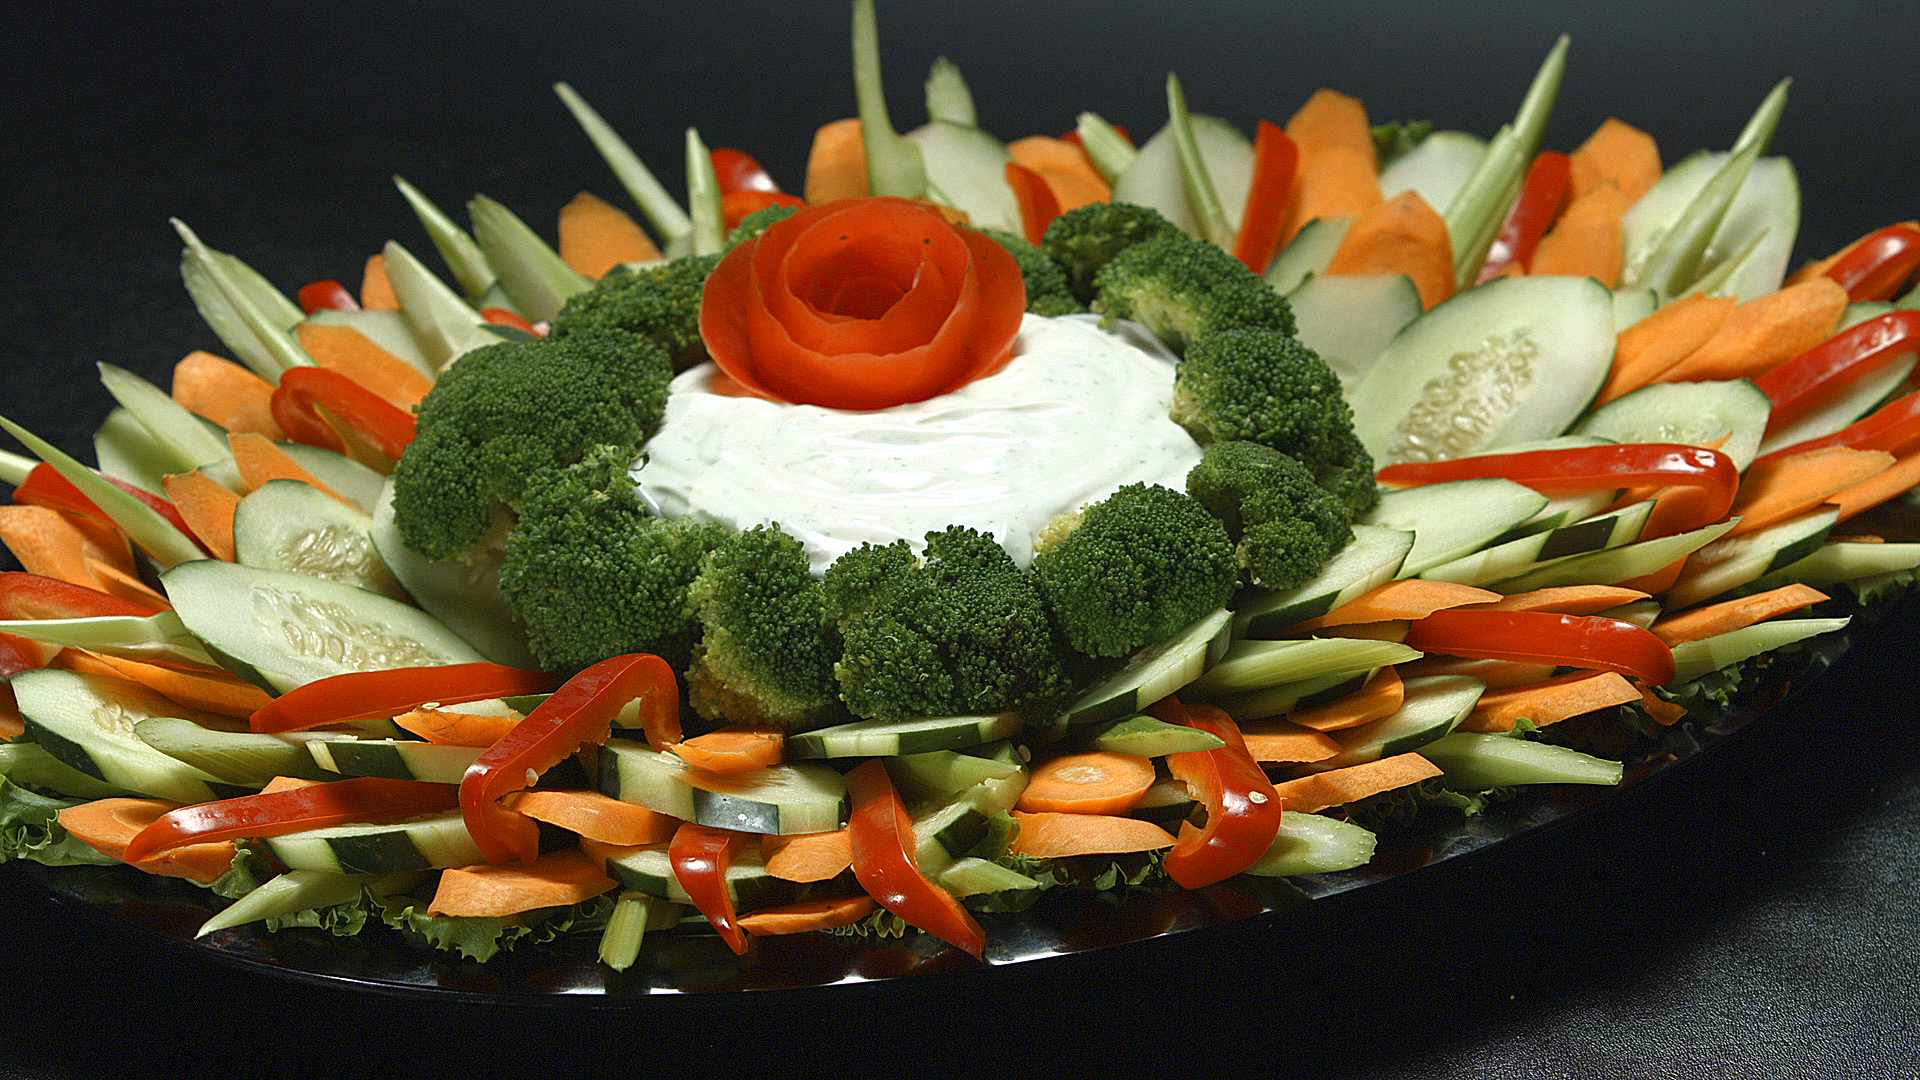 Veggie platter with dip in the middle